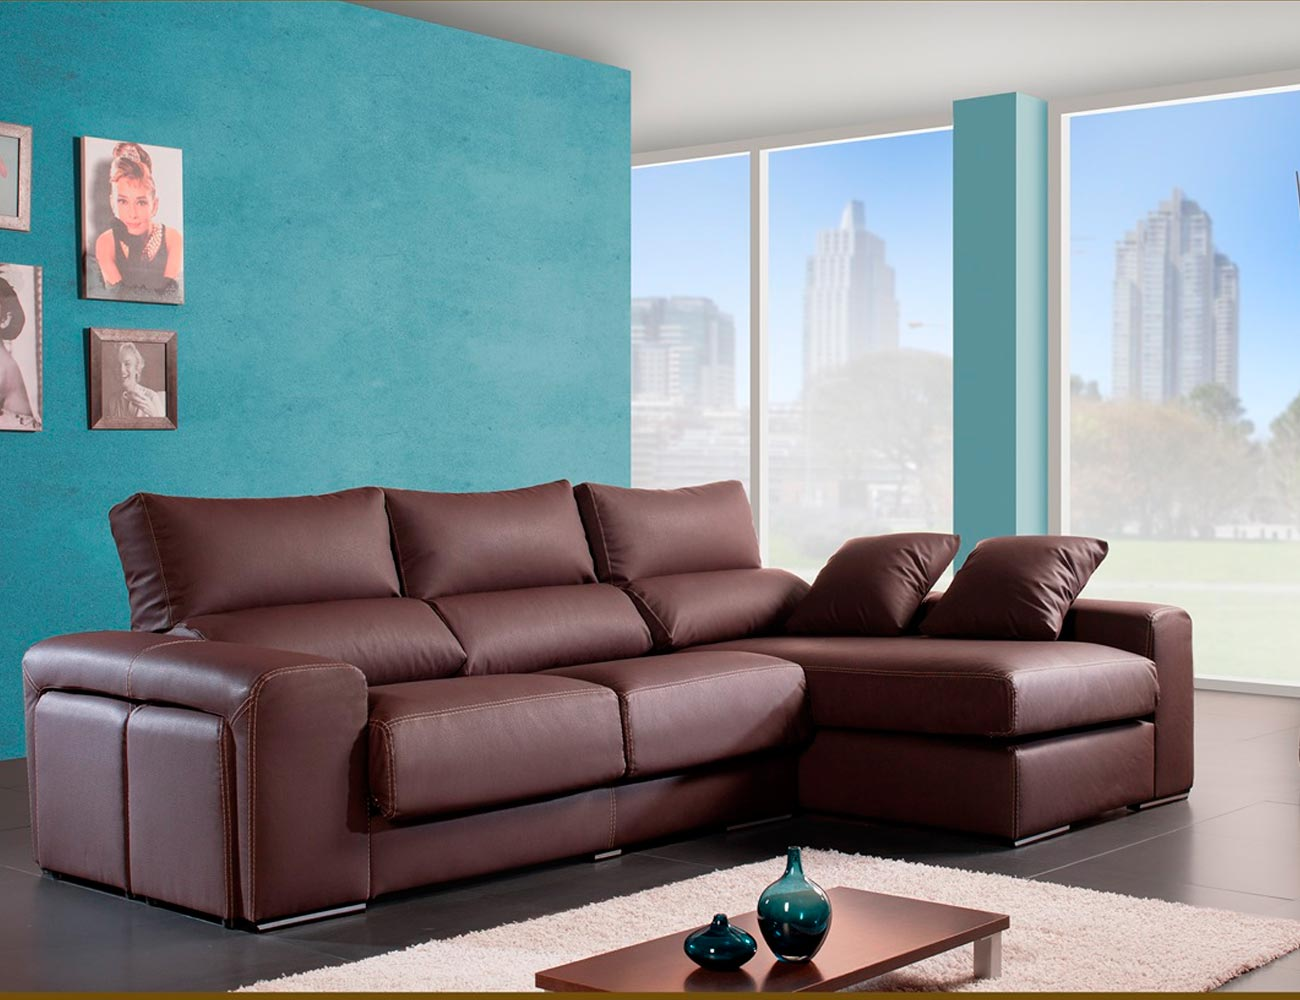 Sofa chaiselongue moderno polipiel chocolate poufs taburetes 1